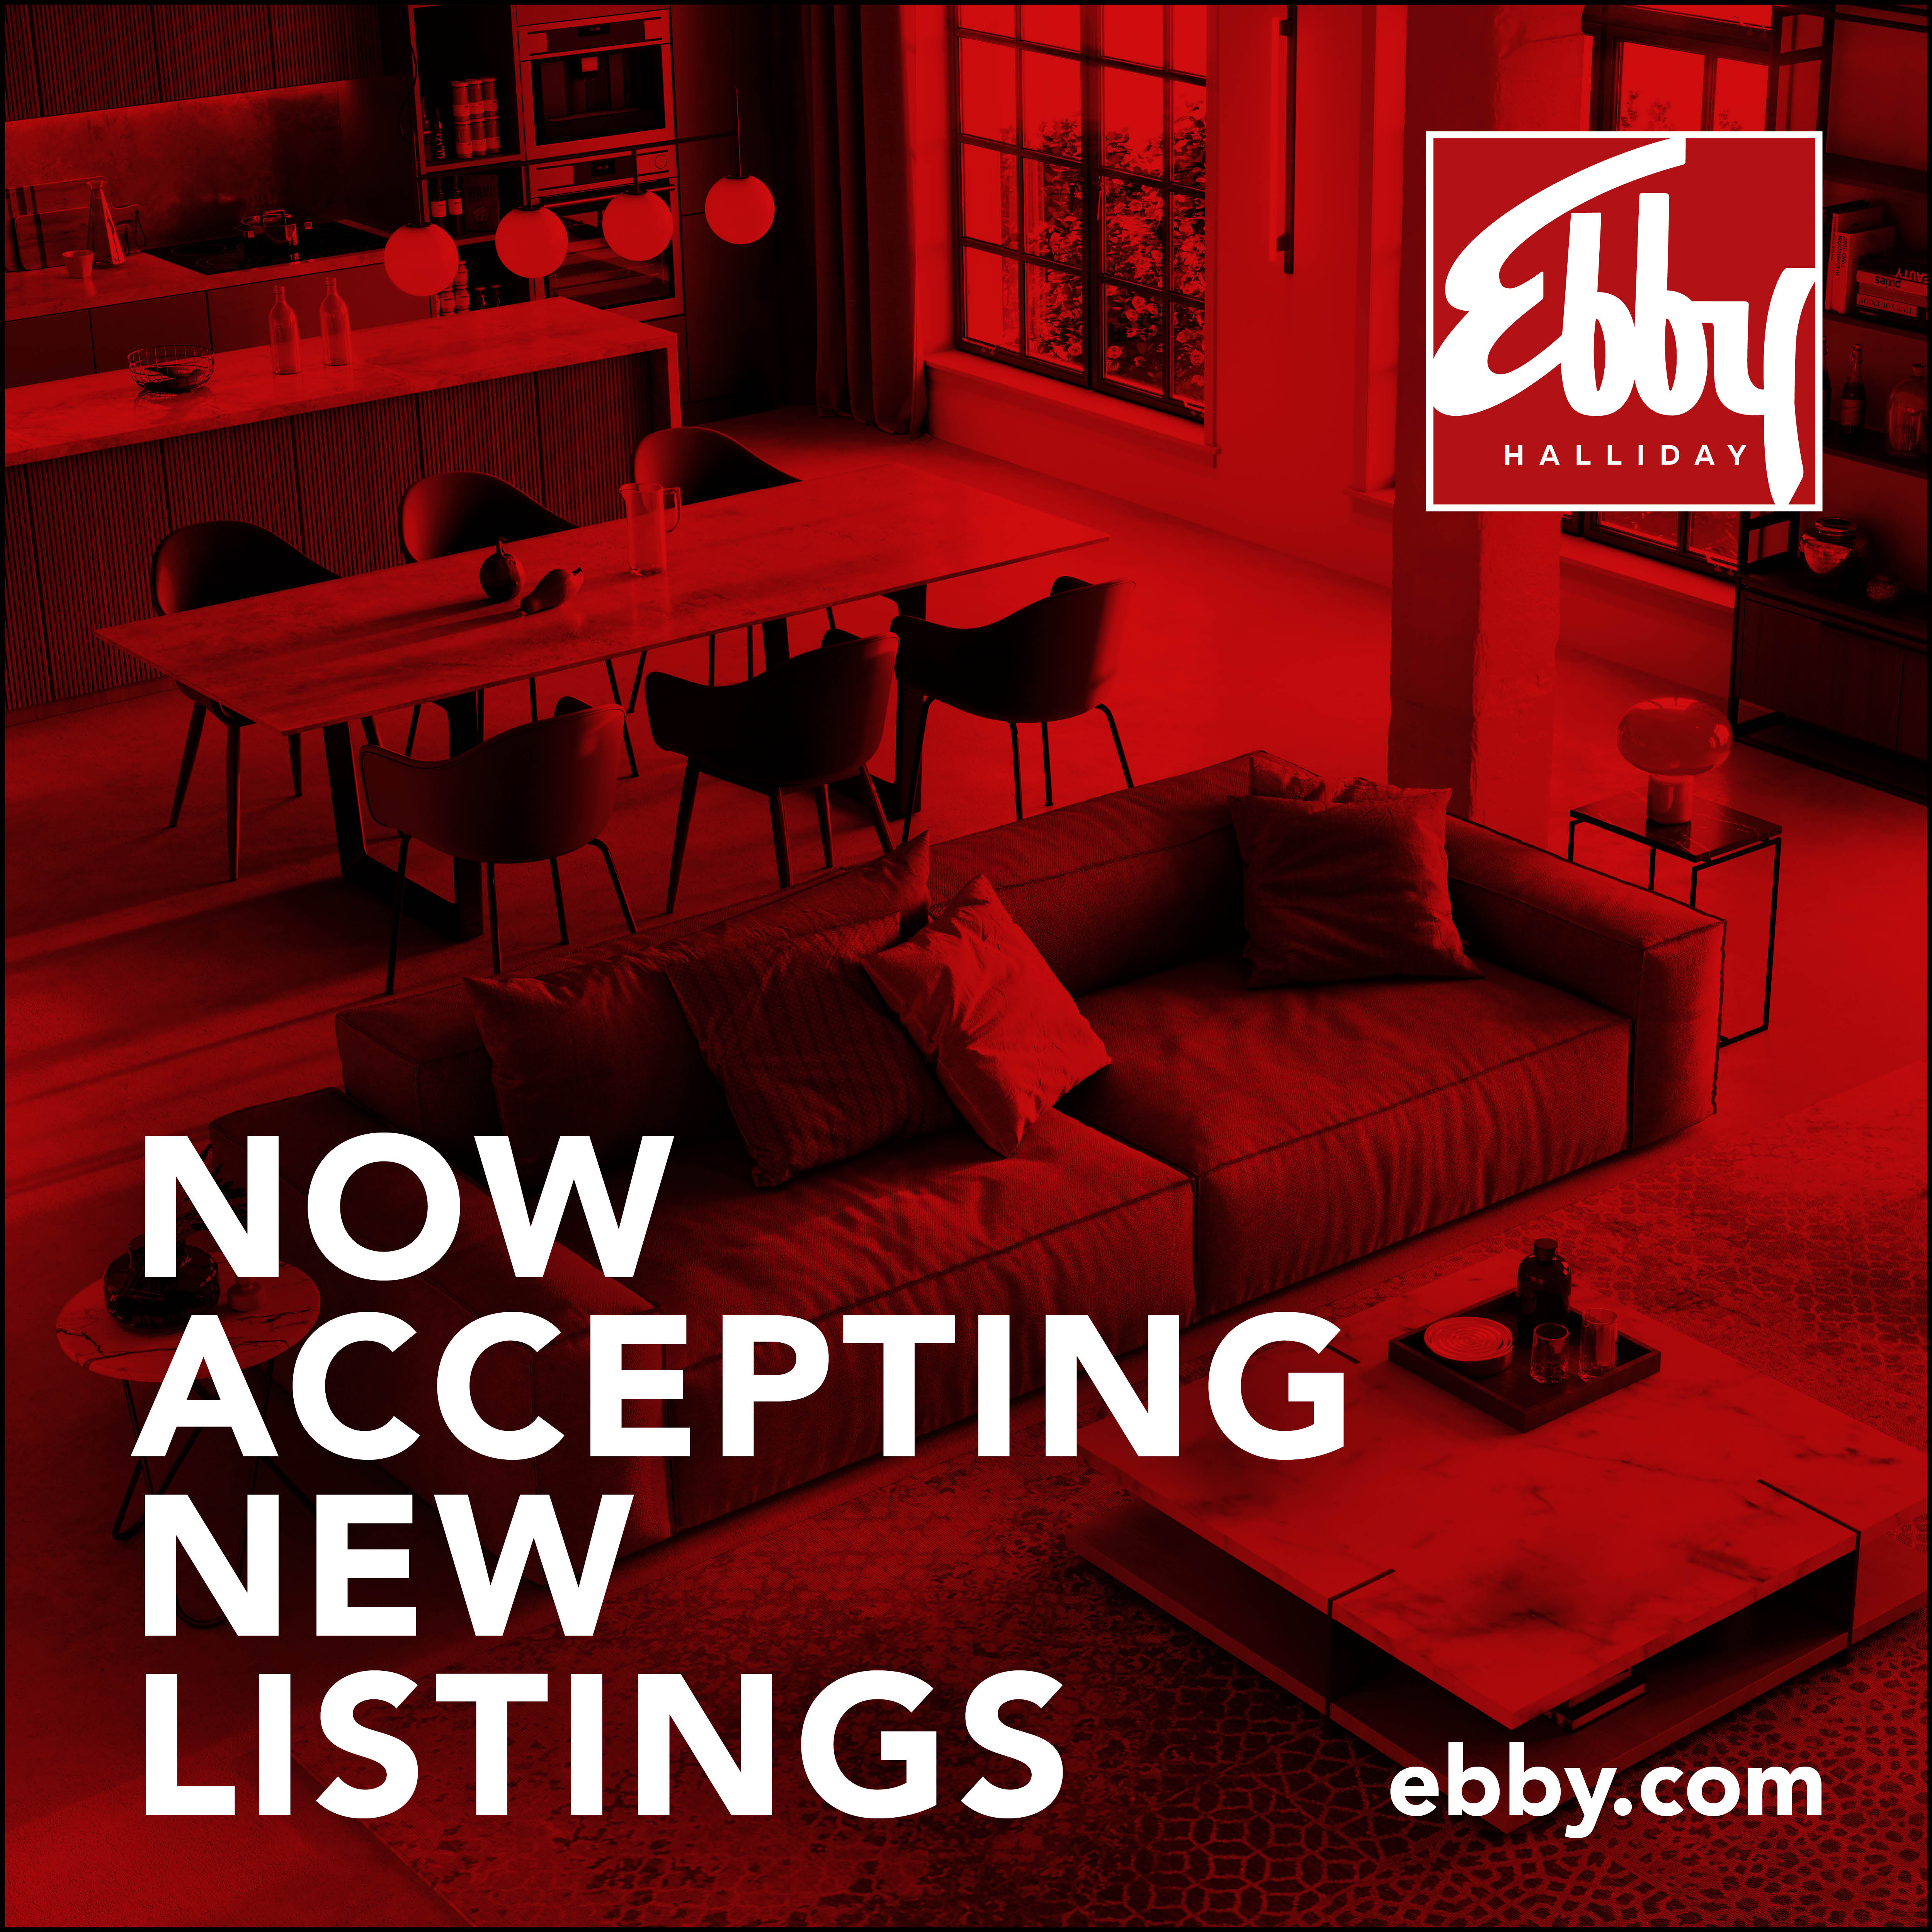 now_accepting_new_listings_-_option_2_-_ebby.jpg